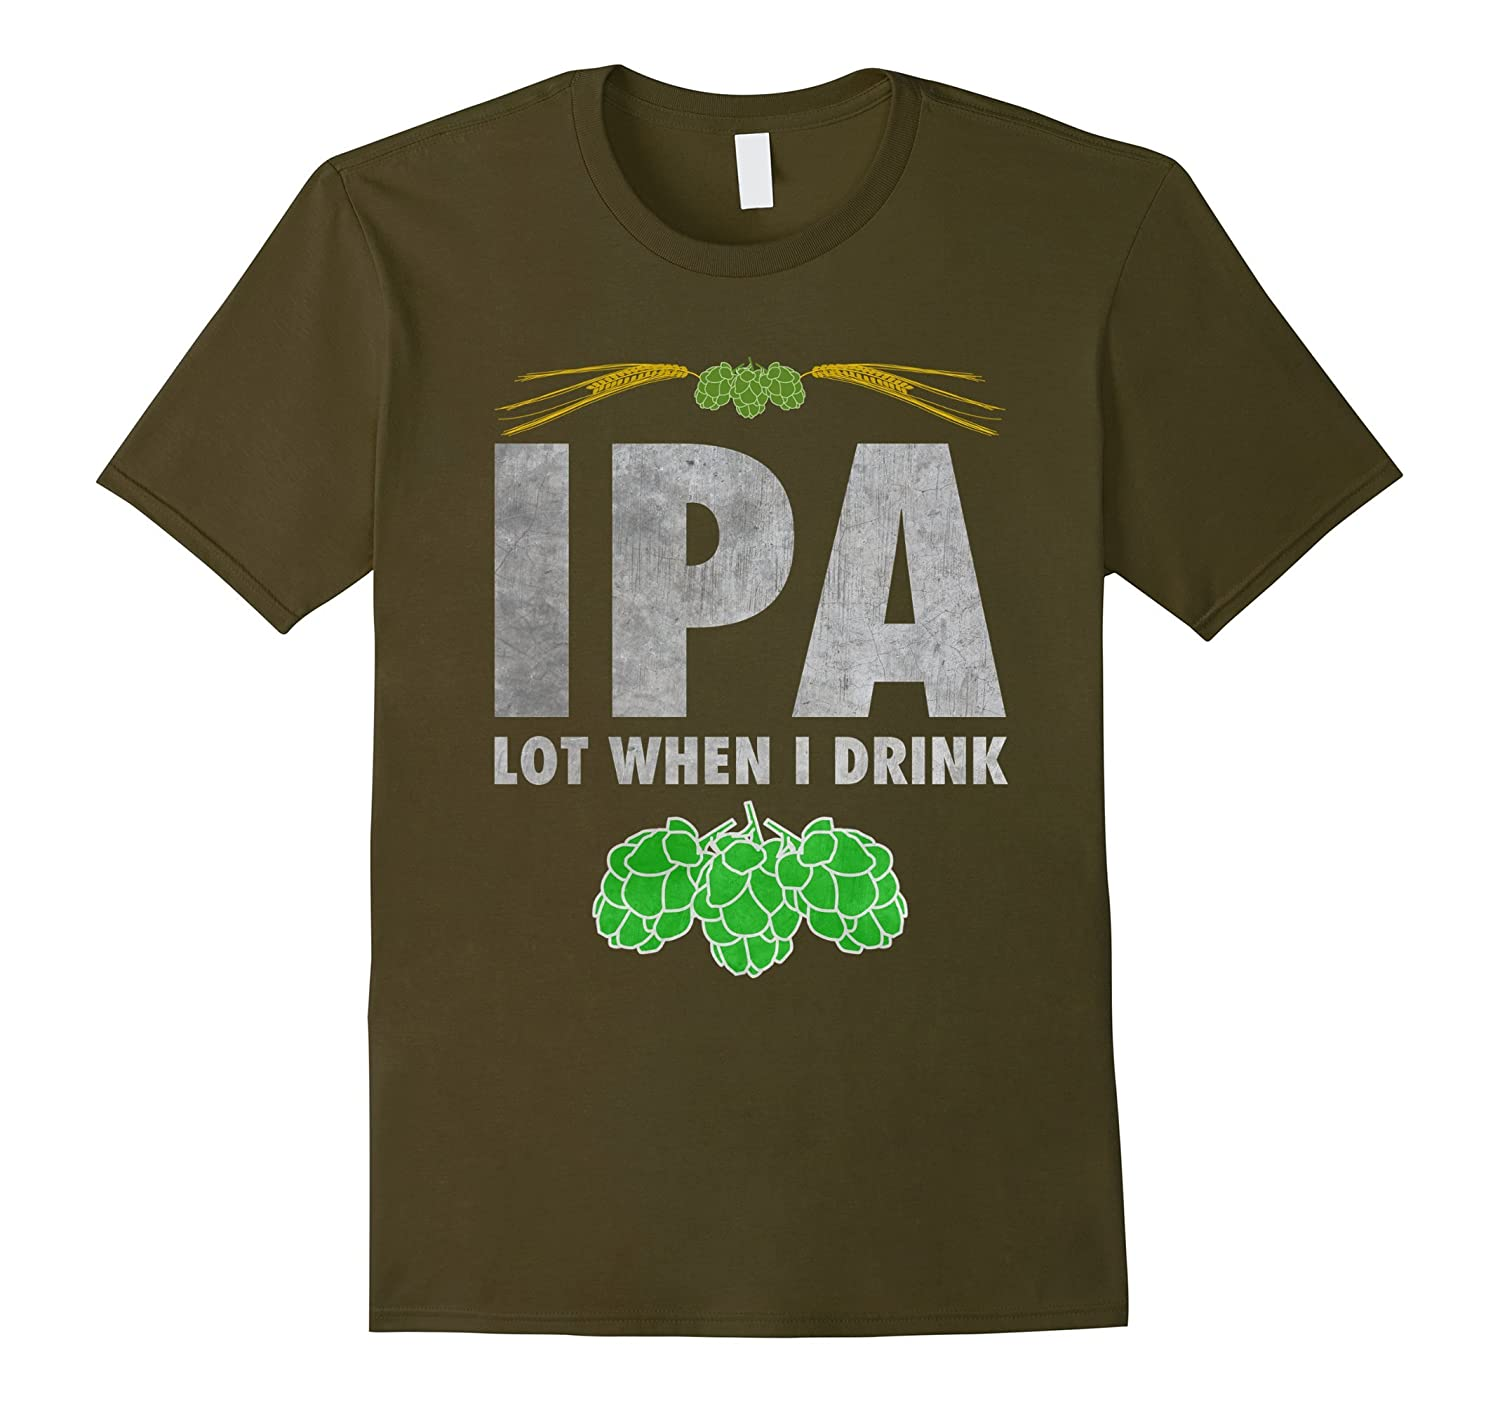 Ipa lot when i drink t shirt funny craft beer lover gift for Funny craft beer shirts